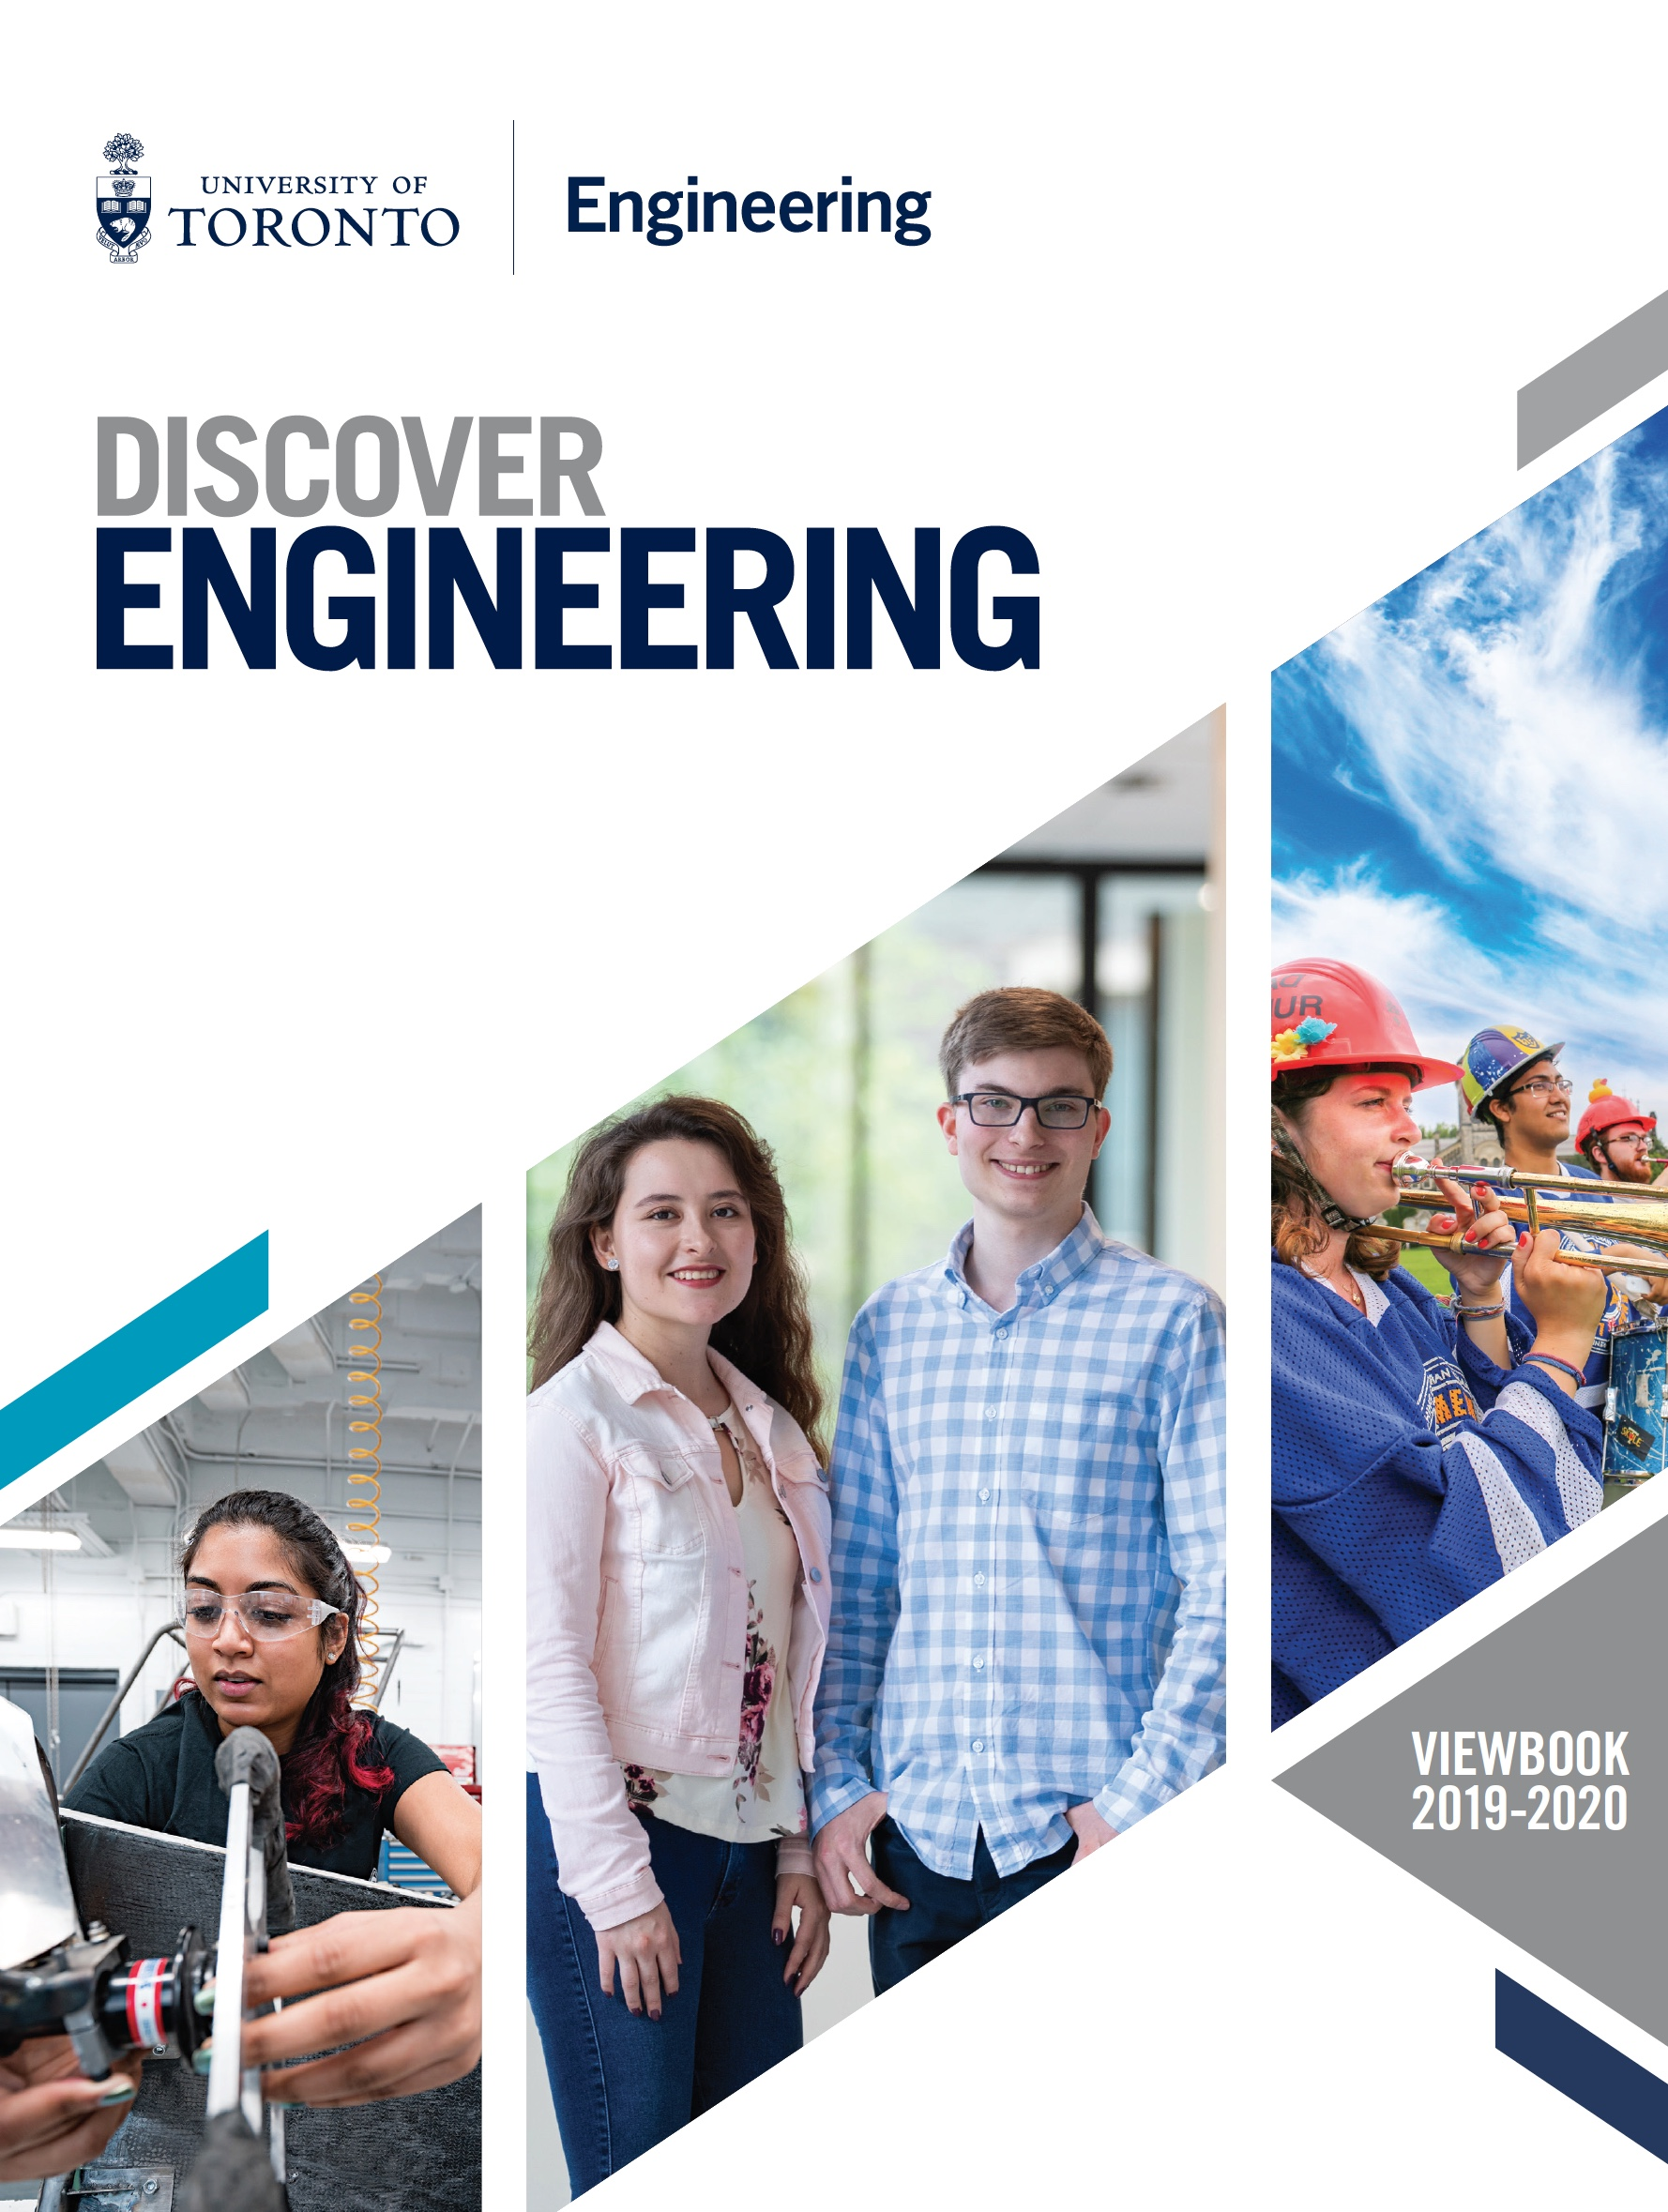 Discover Engineering Viewbook 2019-2020